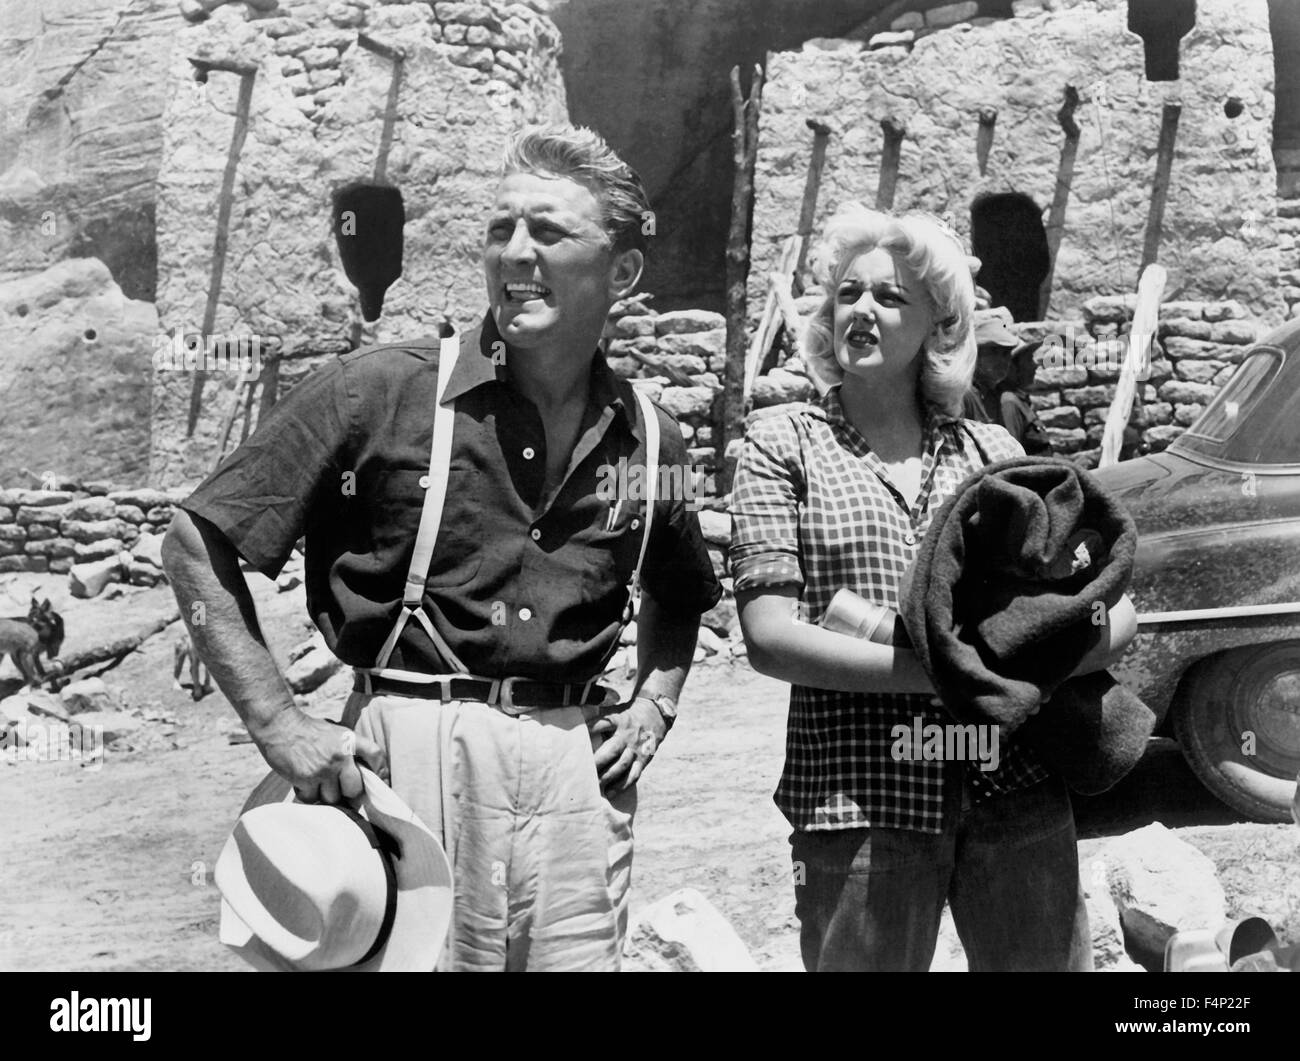 Jan Sterling, Kirk Douglas / Ace In The Hole 1951 directed by Billy Wilder - Stock Image